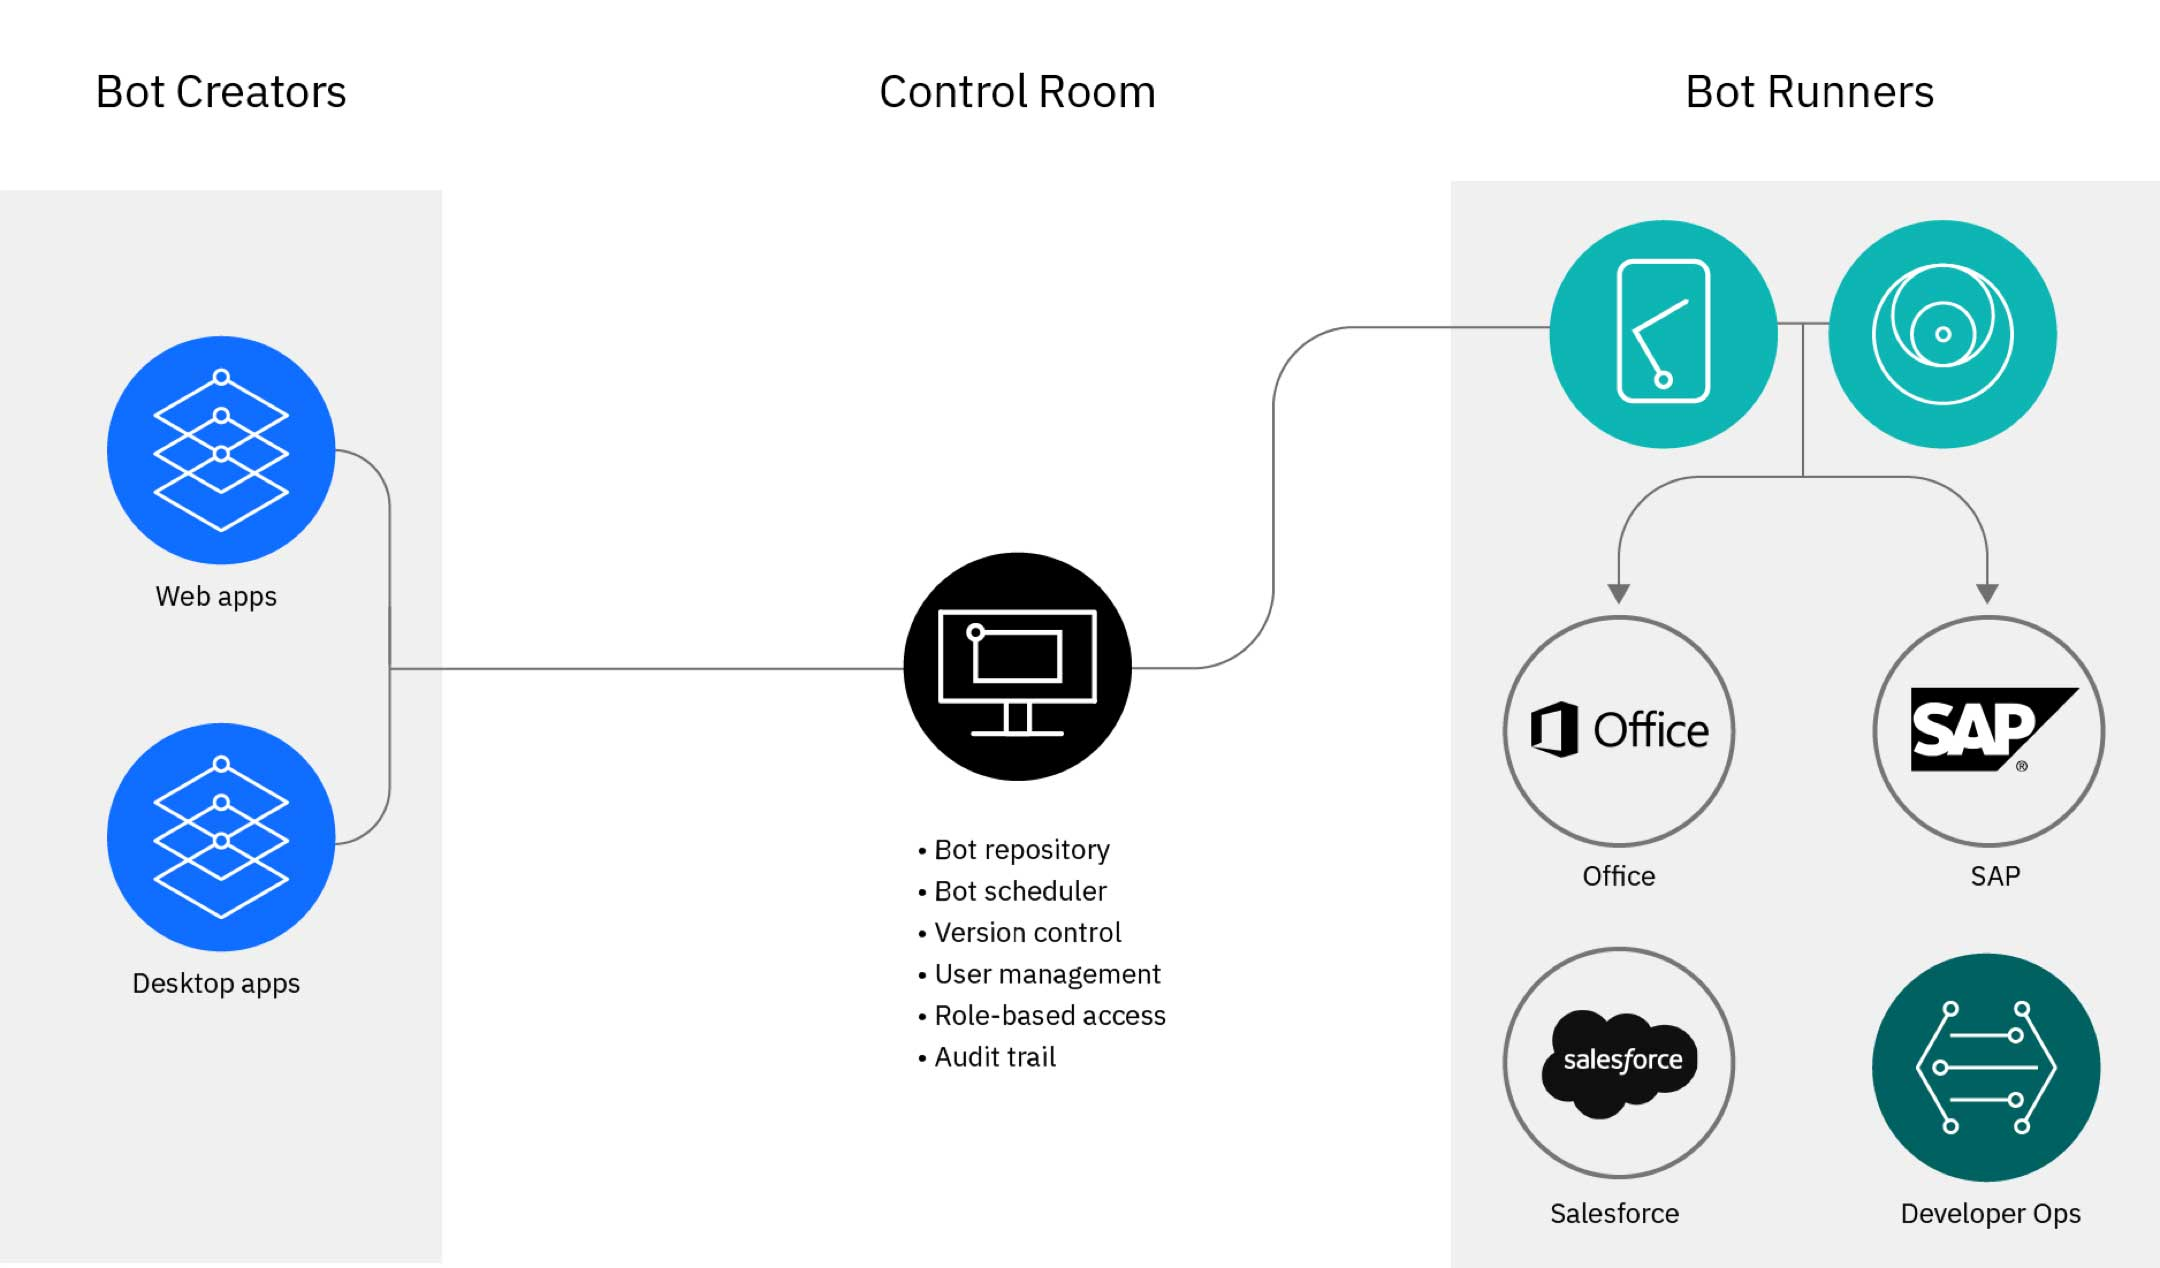 A diagram showing how bot creators, the control room and bot runners interact